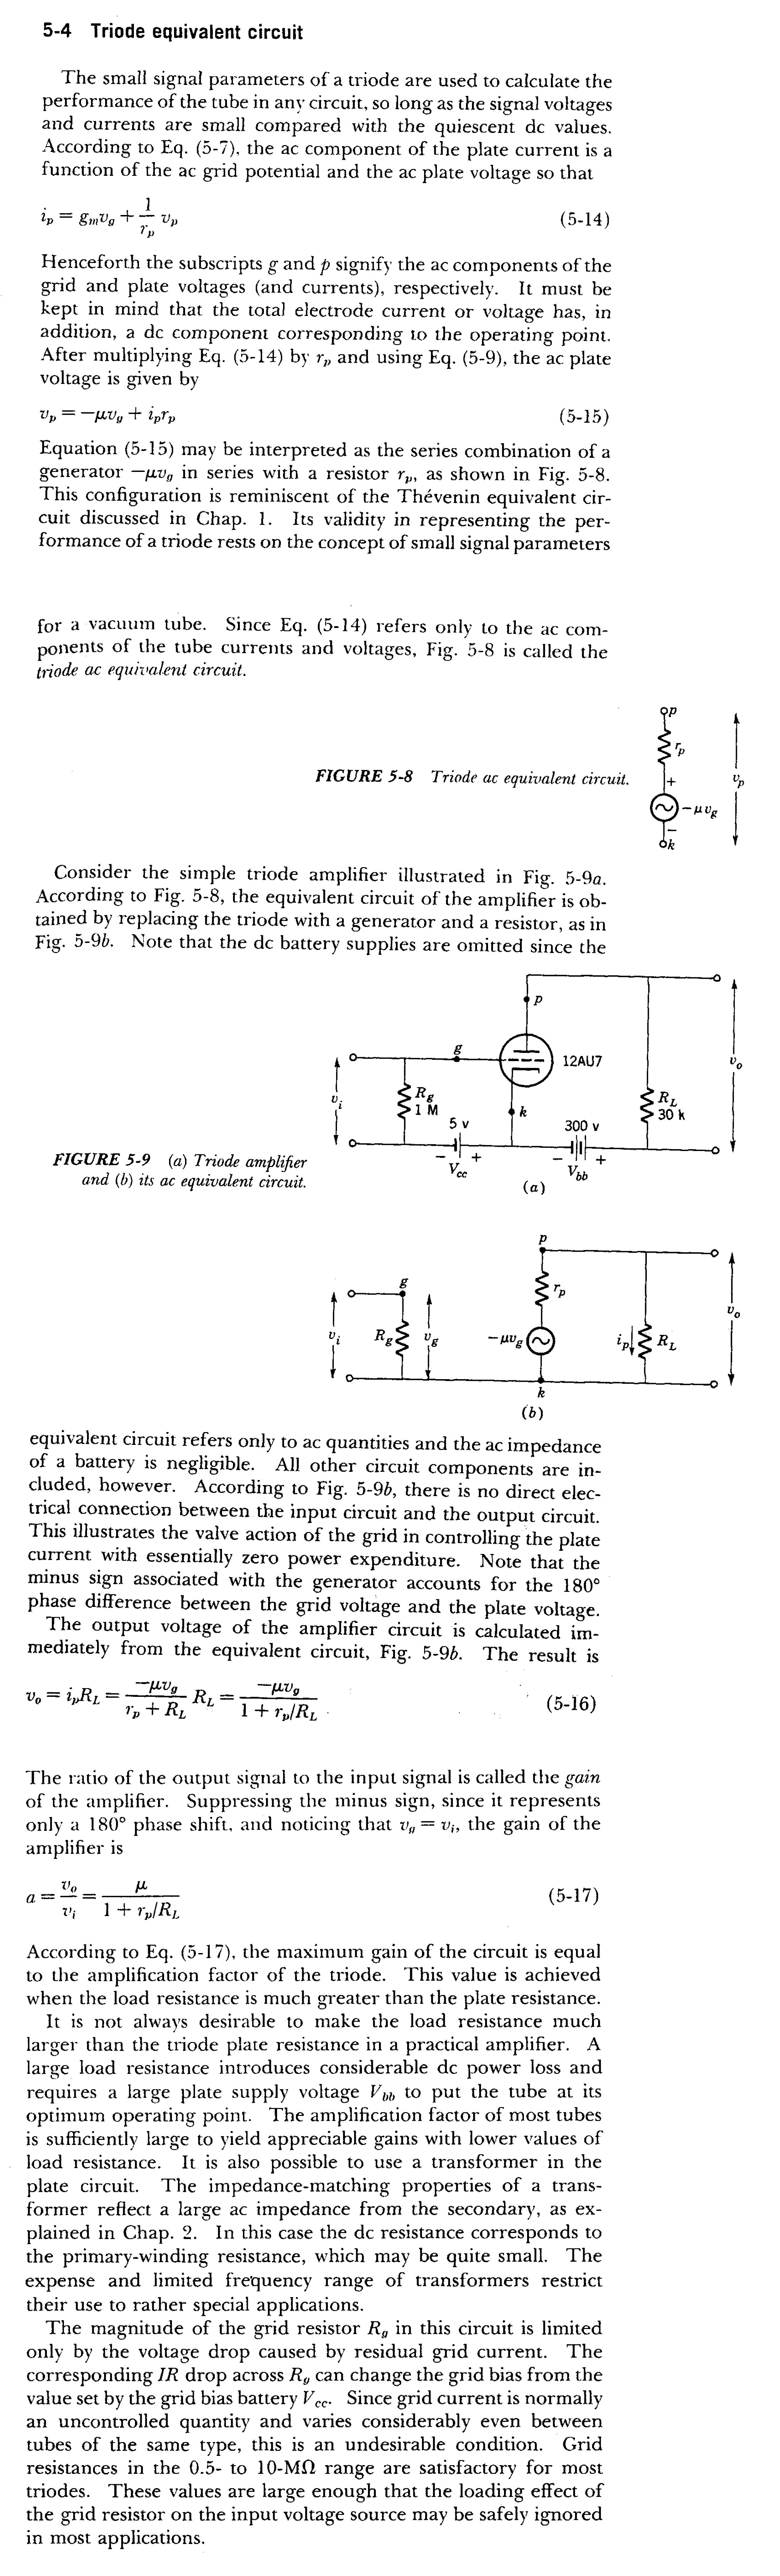 January 2000 Page 5 Diy Hifi Supply Find The Thvenin Equivalent With Respect To 1nf Capacitor Triodes Section 4 Triode Circuit